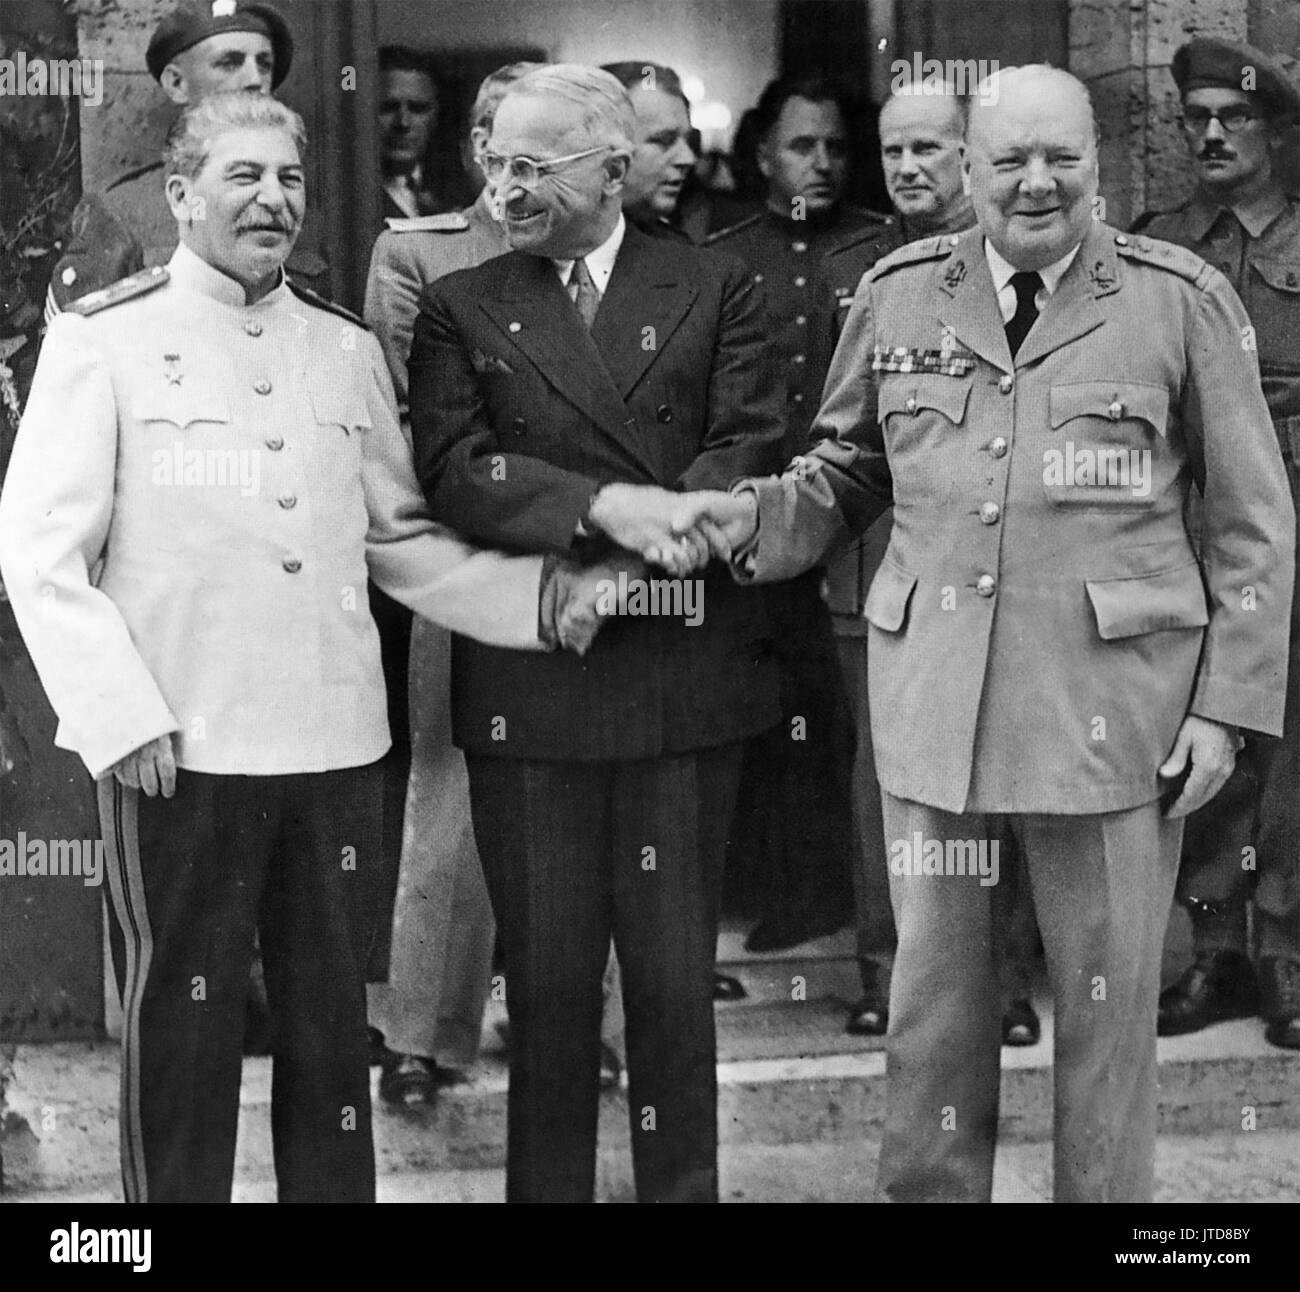 POTSDAM CONFERENCE July-August 1945. From left: Joseph Stalin, Harry Truman, Winston Churchill - Stock Image